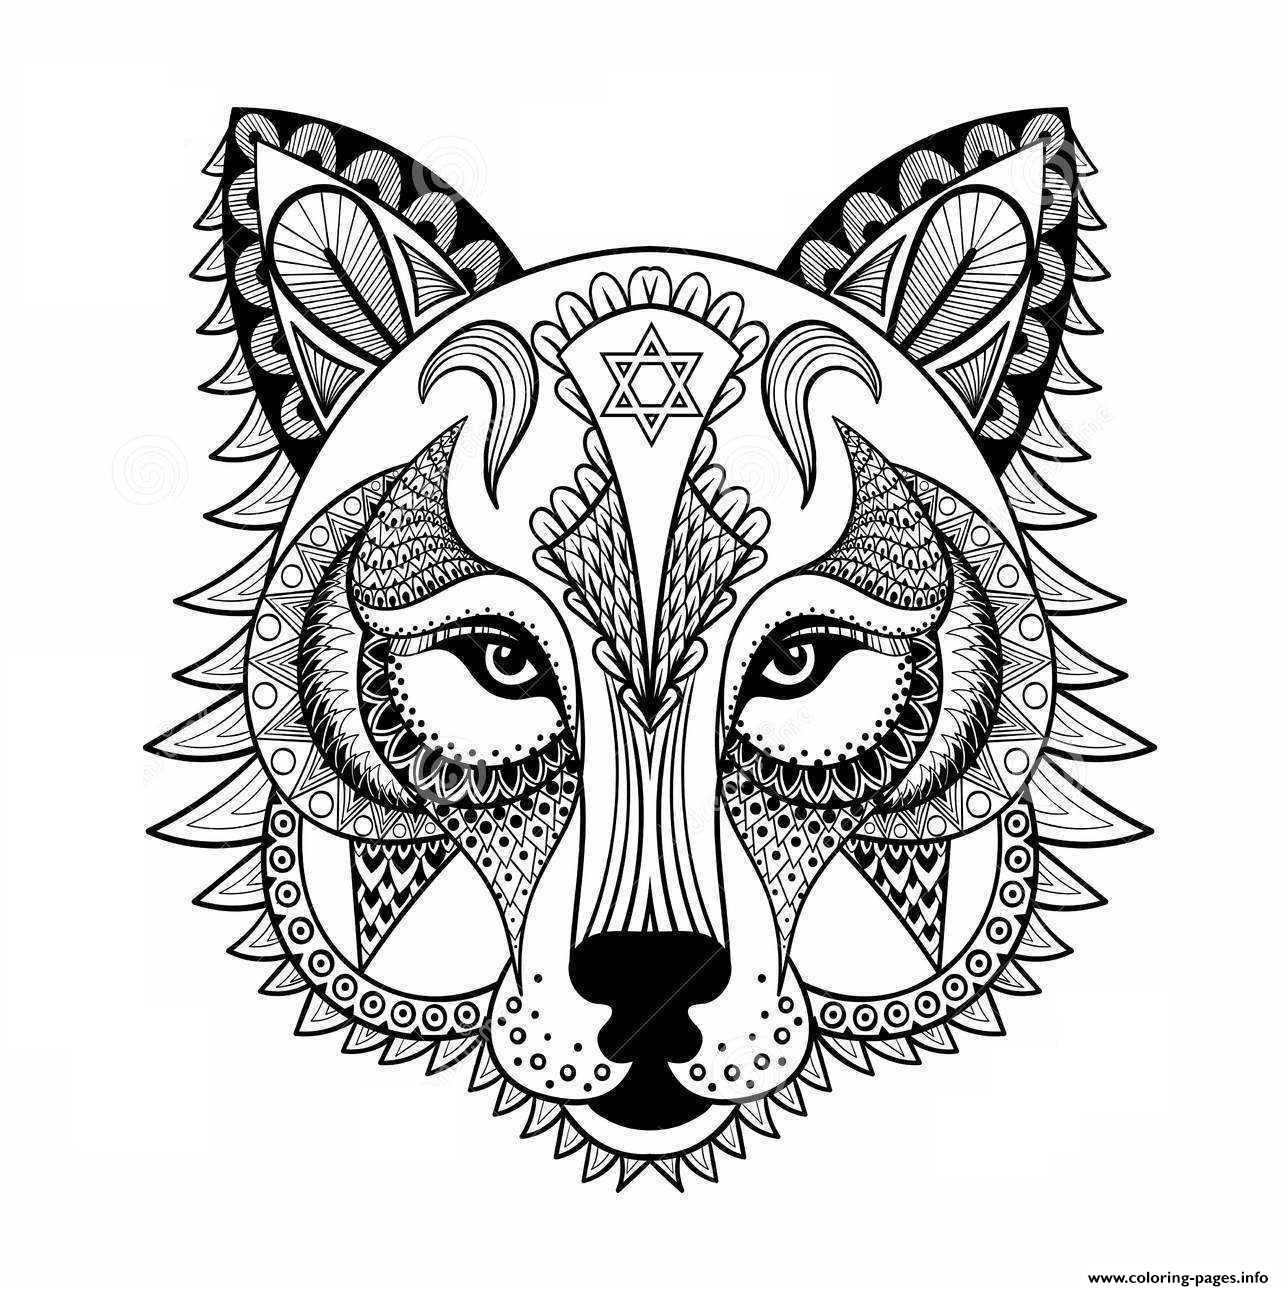 Wolf mandala coloring pages - Wolf Mandala Coloring Pages 8